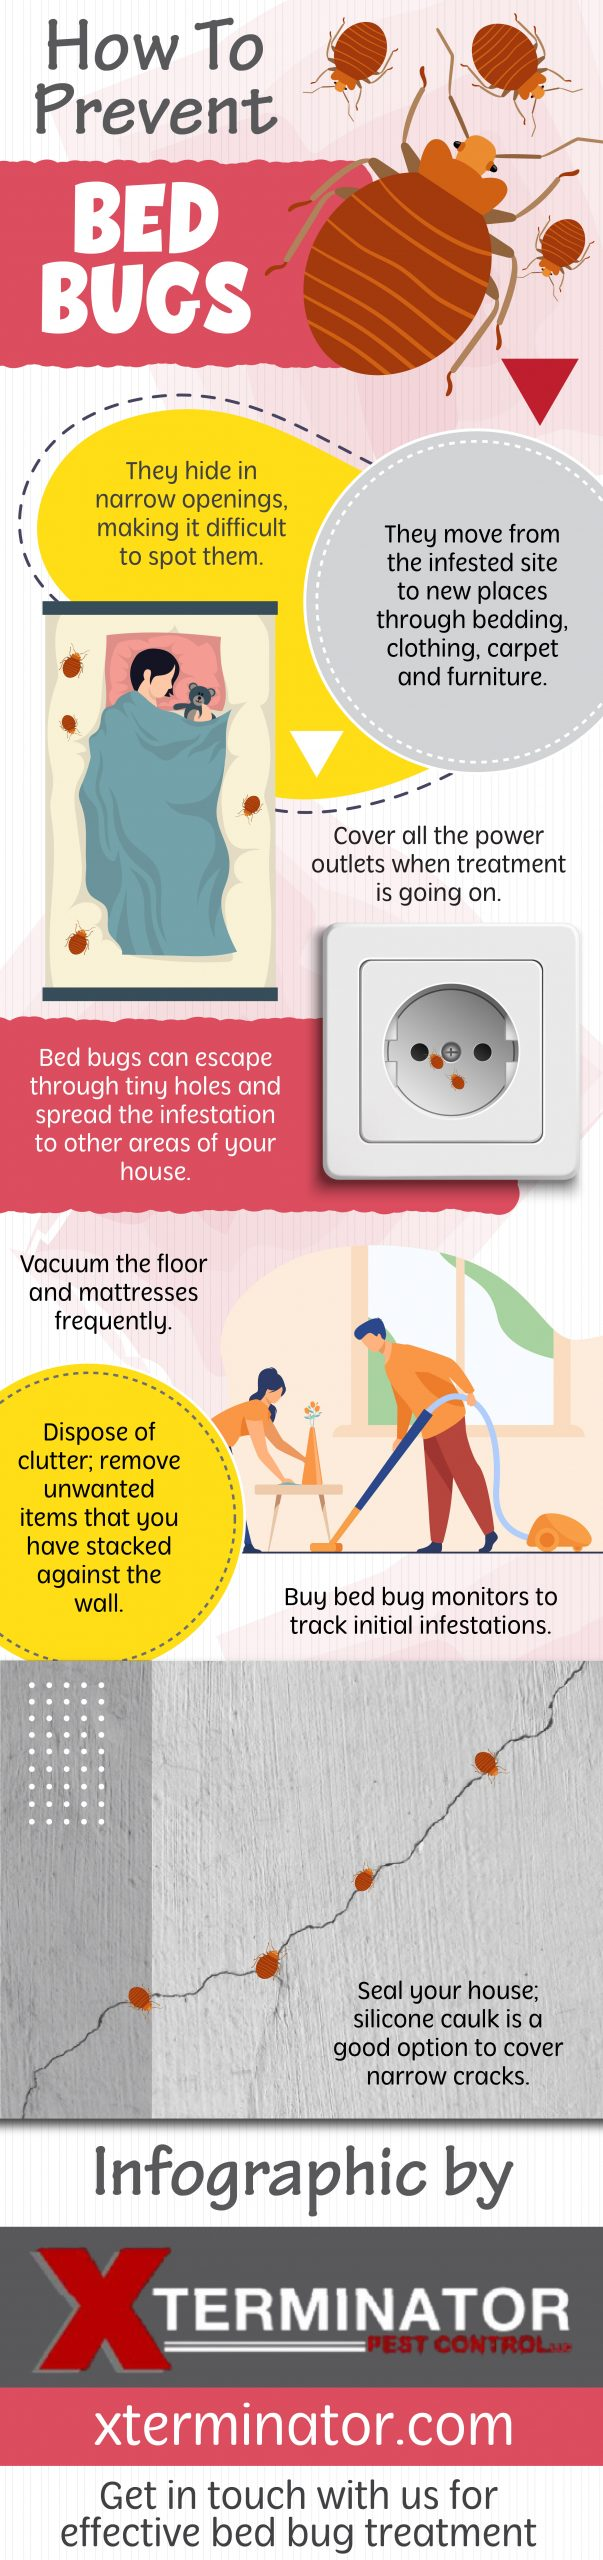 How to Prevent Bed Bugs - Infograph